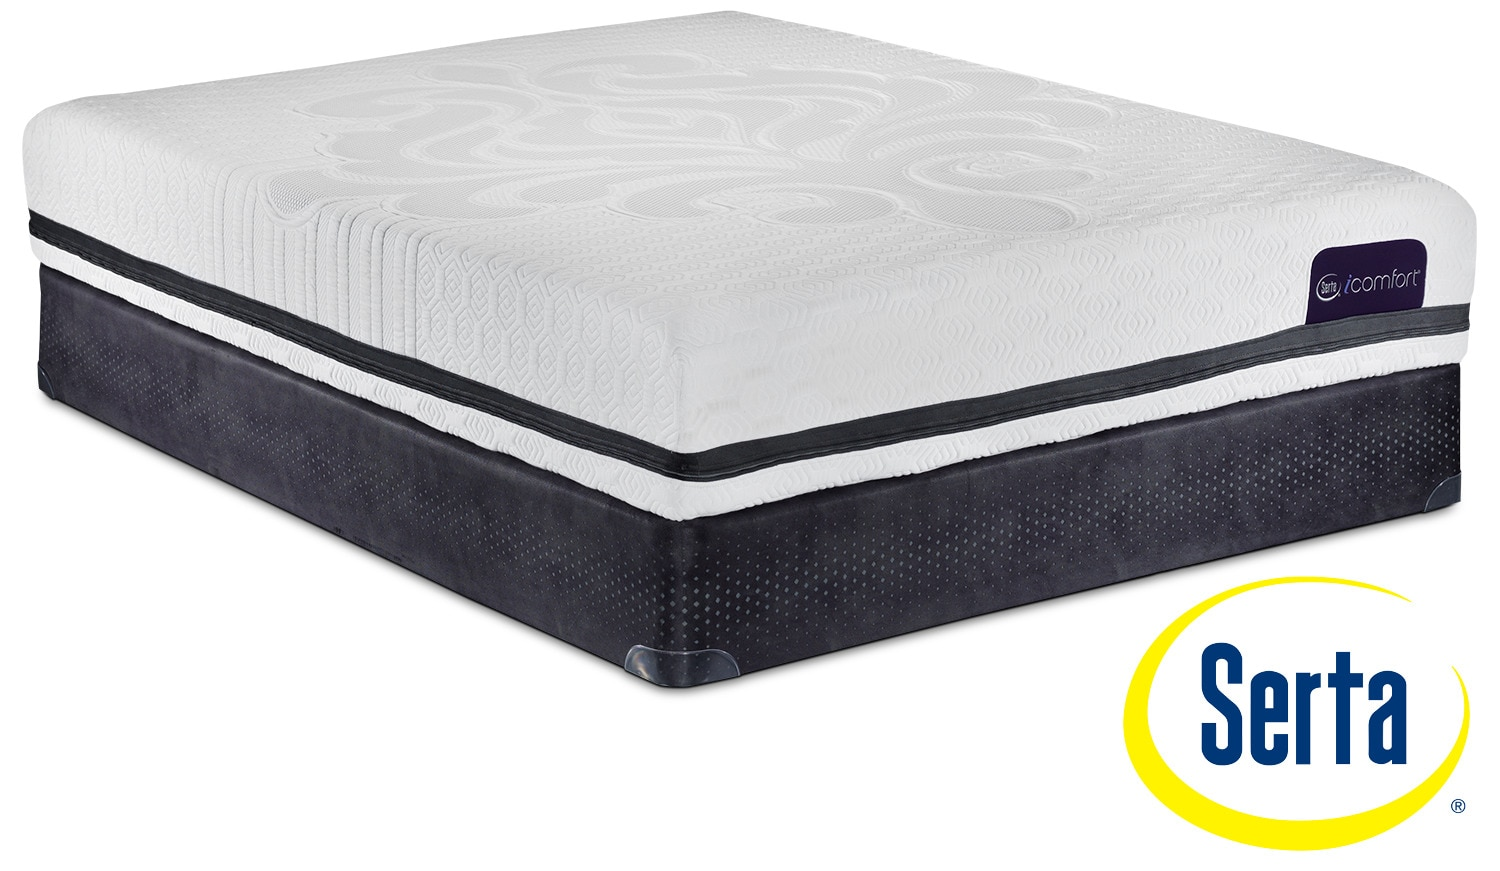 Mattresses and Bedding - Serta iComfort Eco Contingence Firm Twin XL Mattress and Boxspring Set